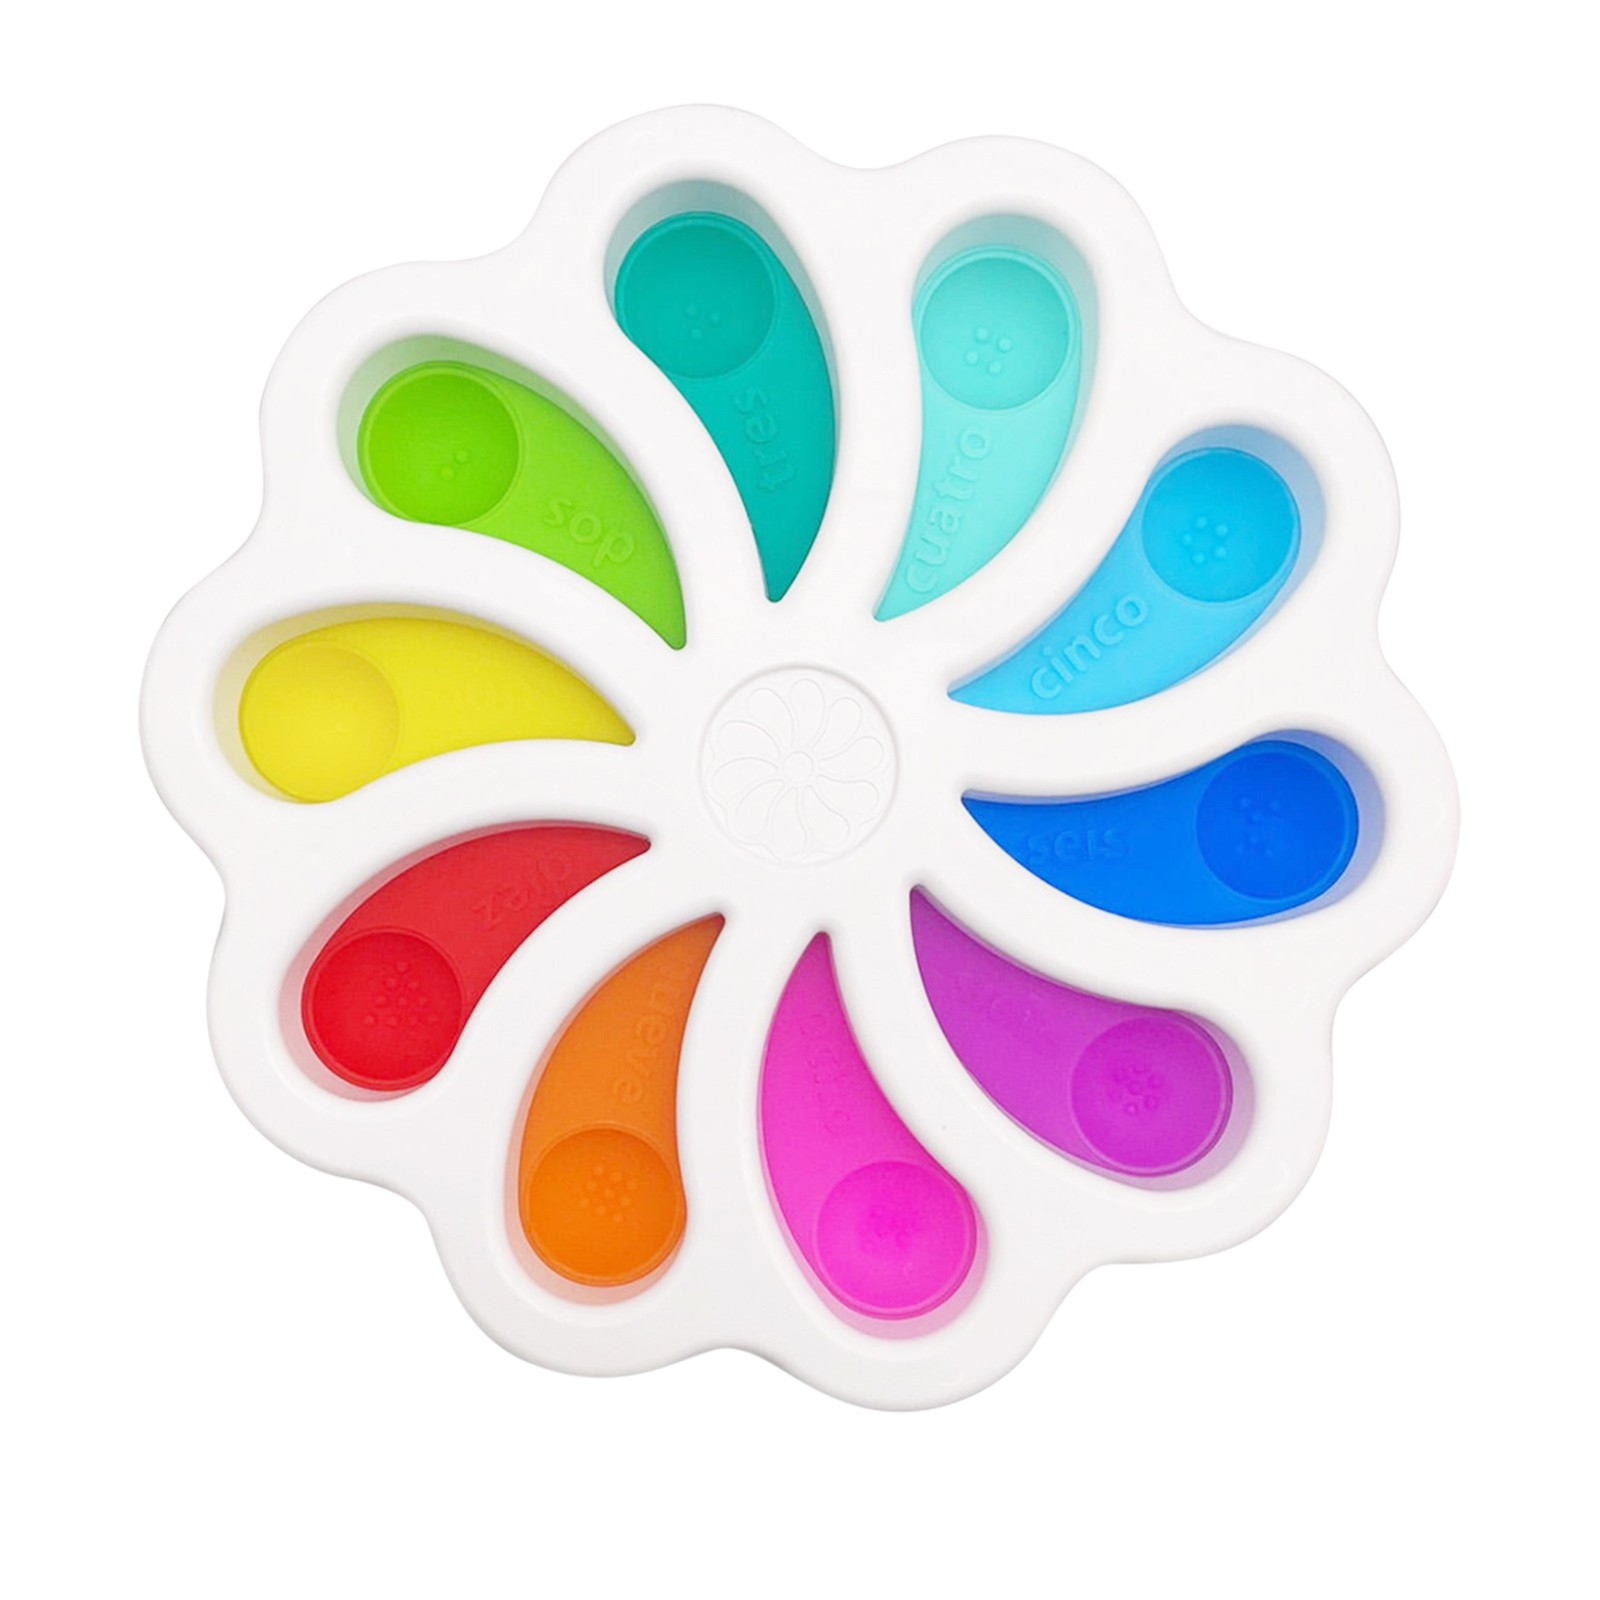 Fidget Toy Sensory-Toys Stress-Relief Dimple Digits Toddlers Soft-Silicone Early-Educational img2